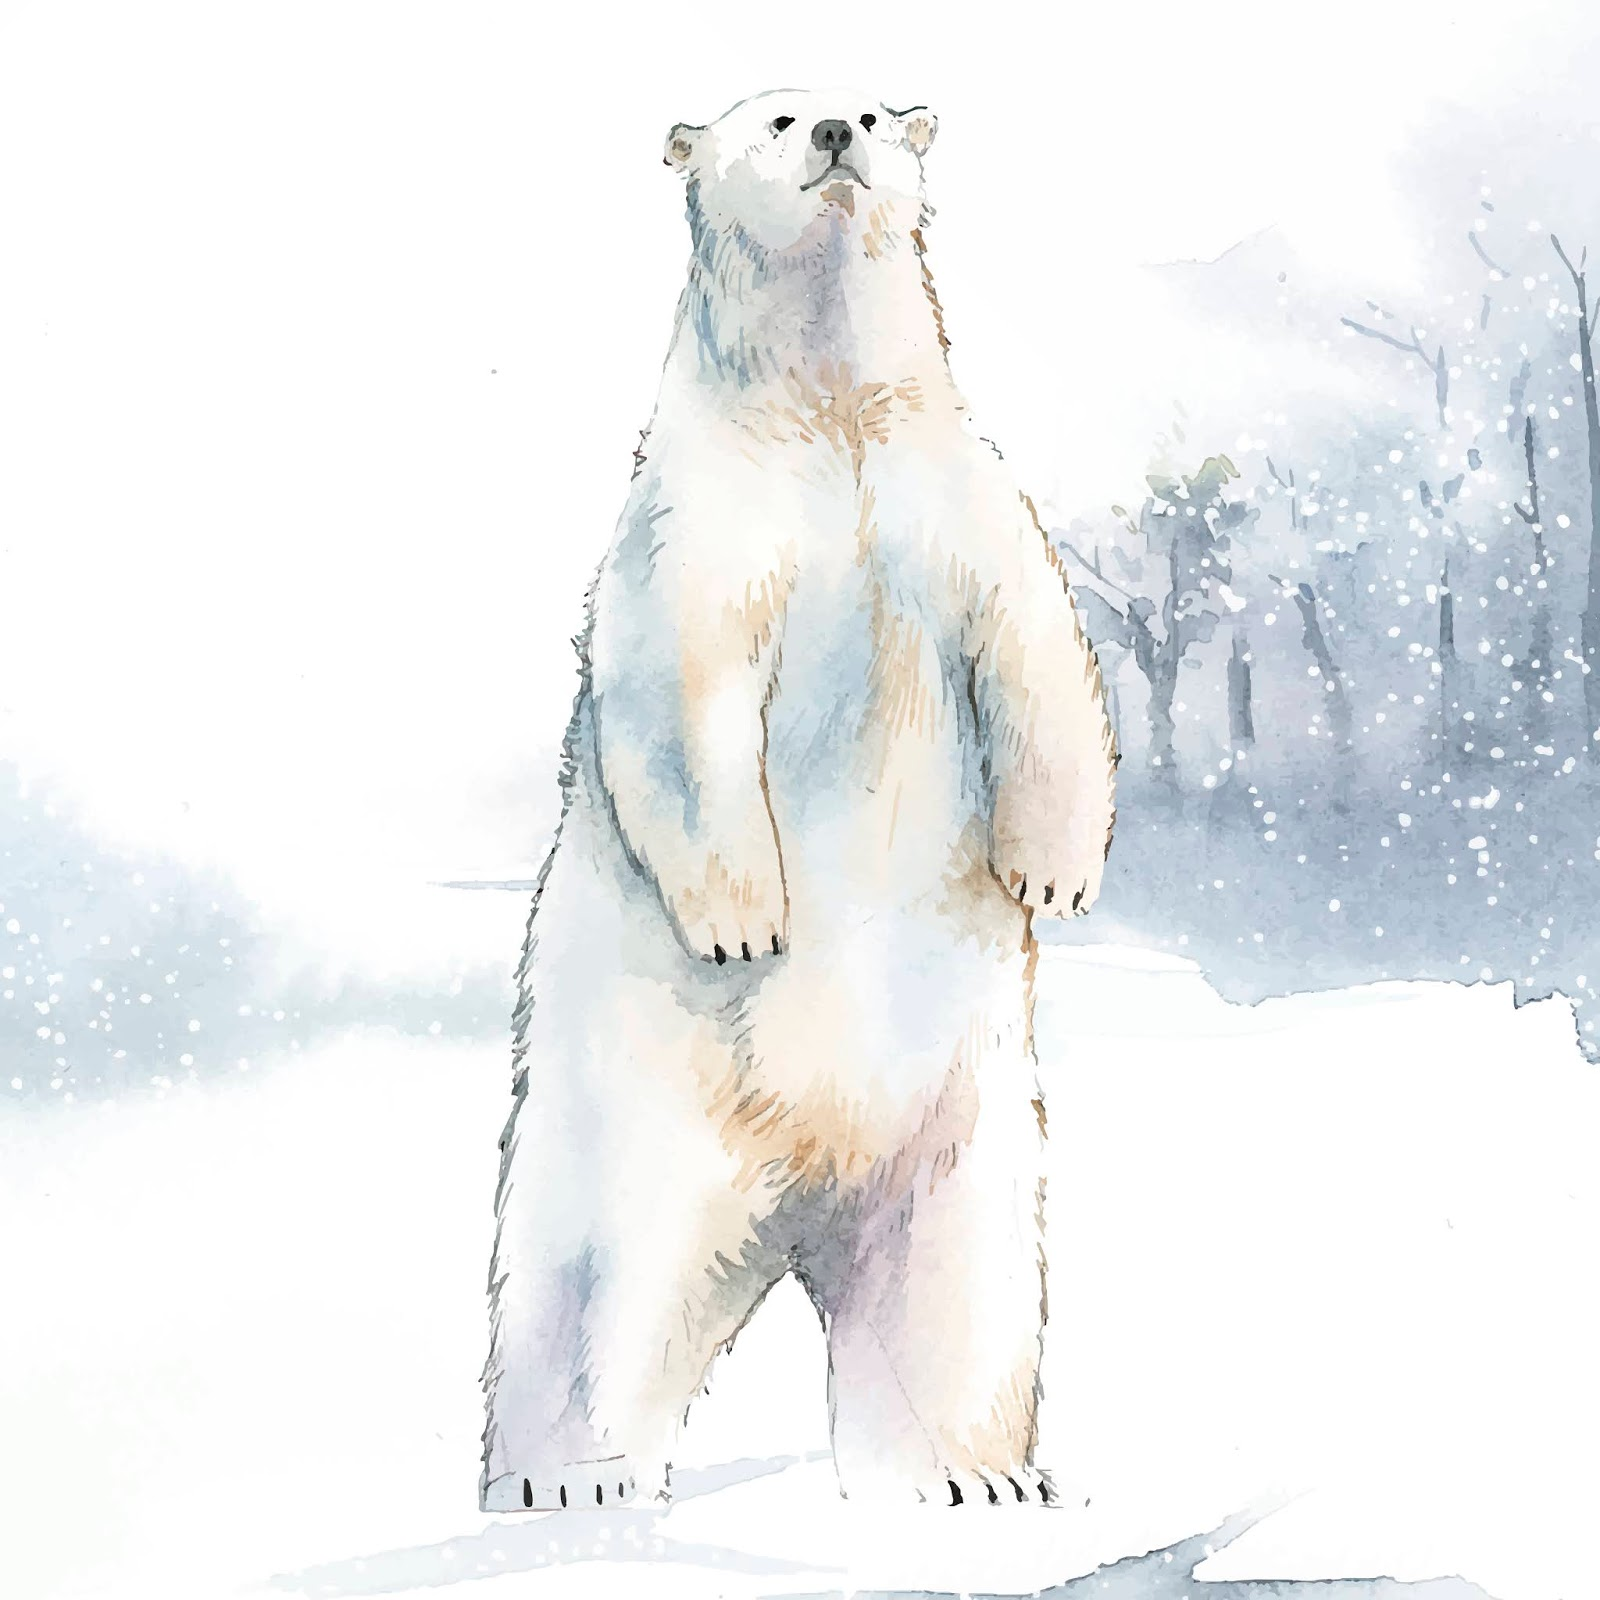 Hand Drawn Polar Bear Snow Watercolor Style Vector Free Download Vector CDR, AI, EPS and PNG Formats